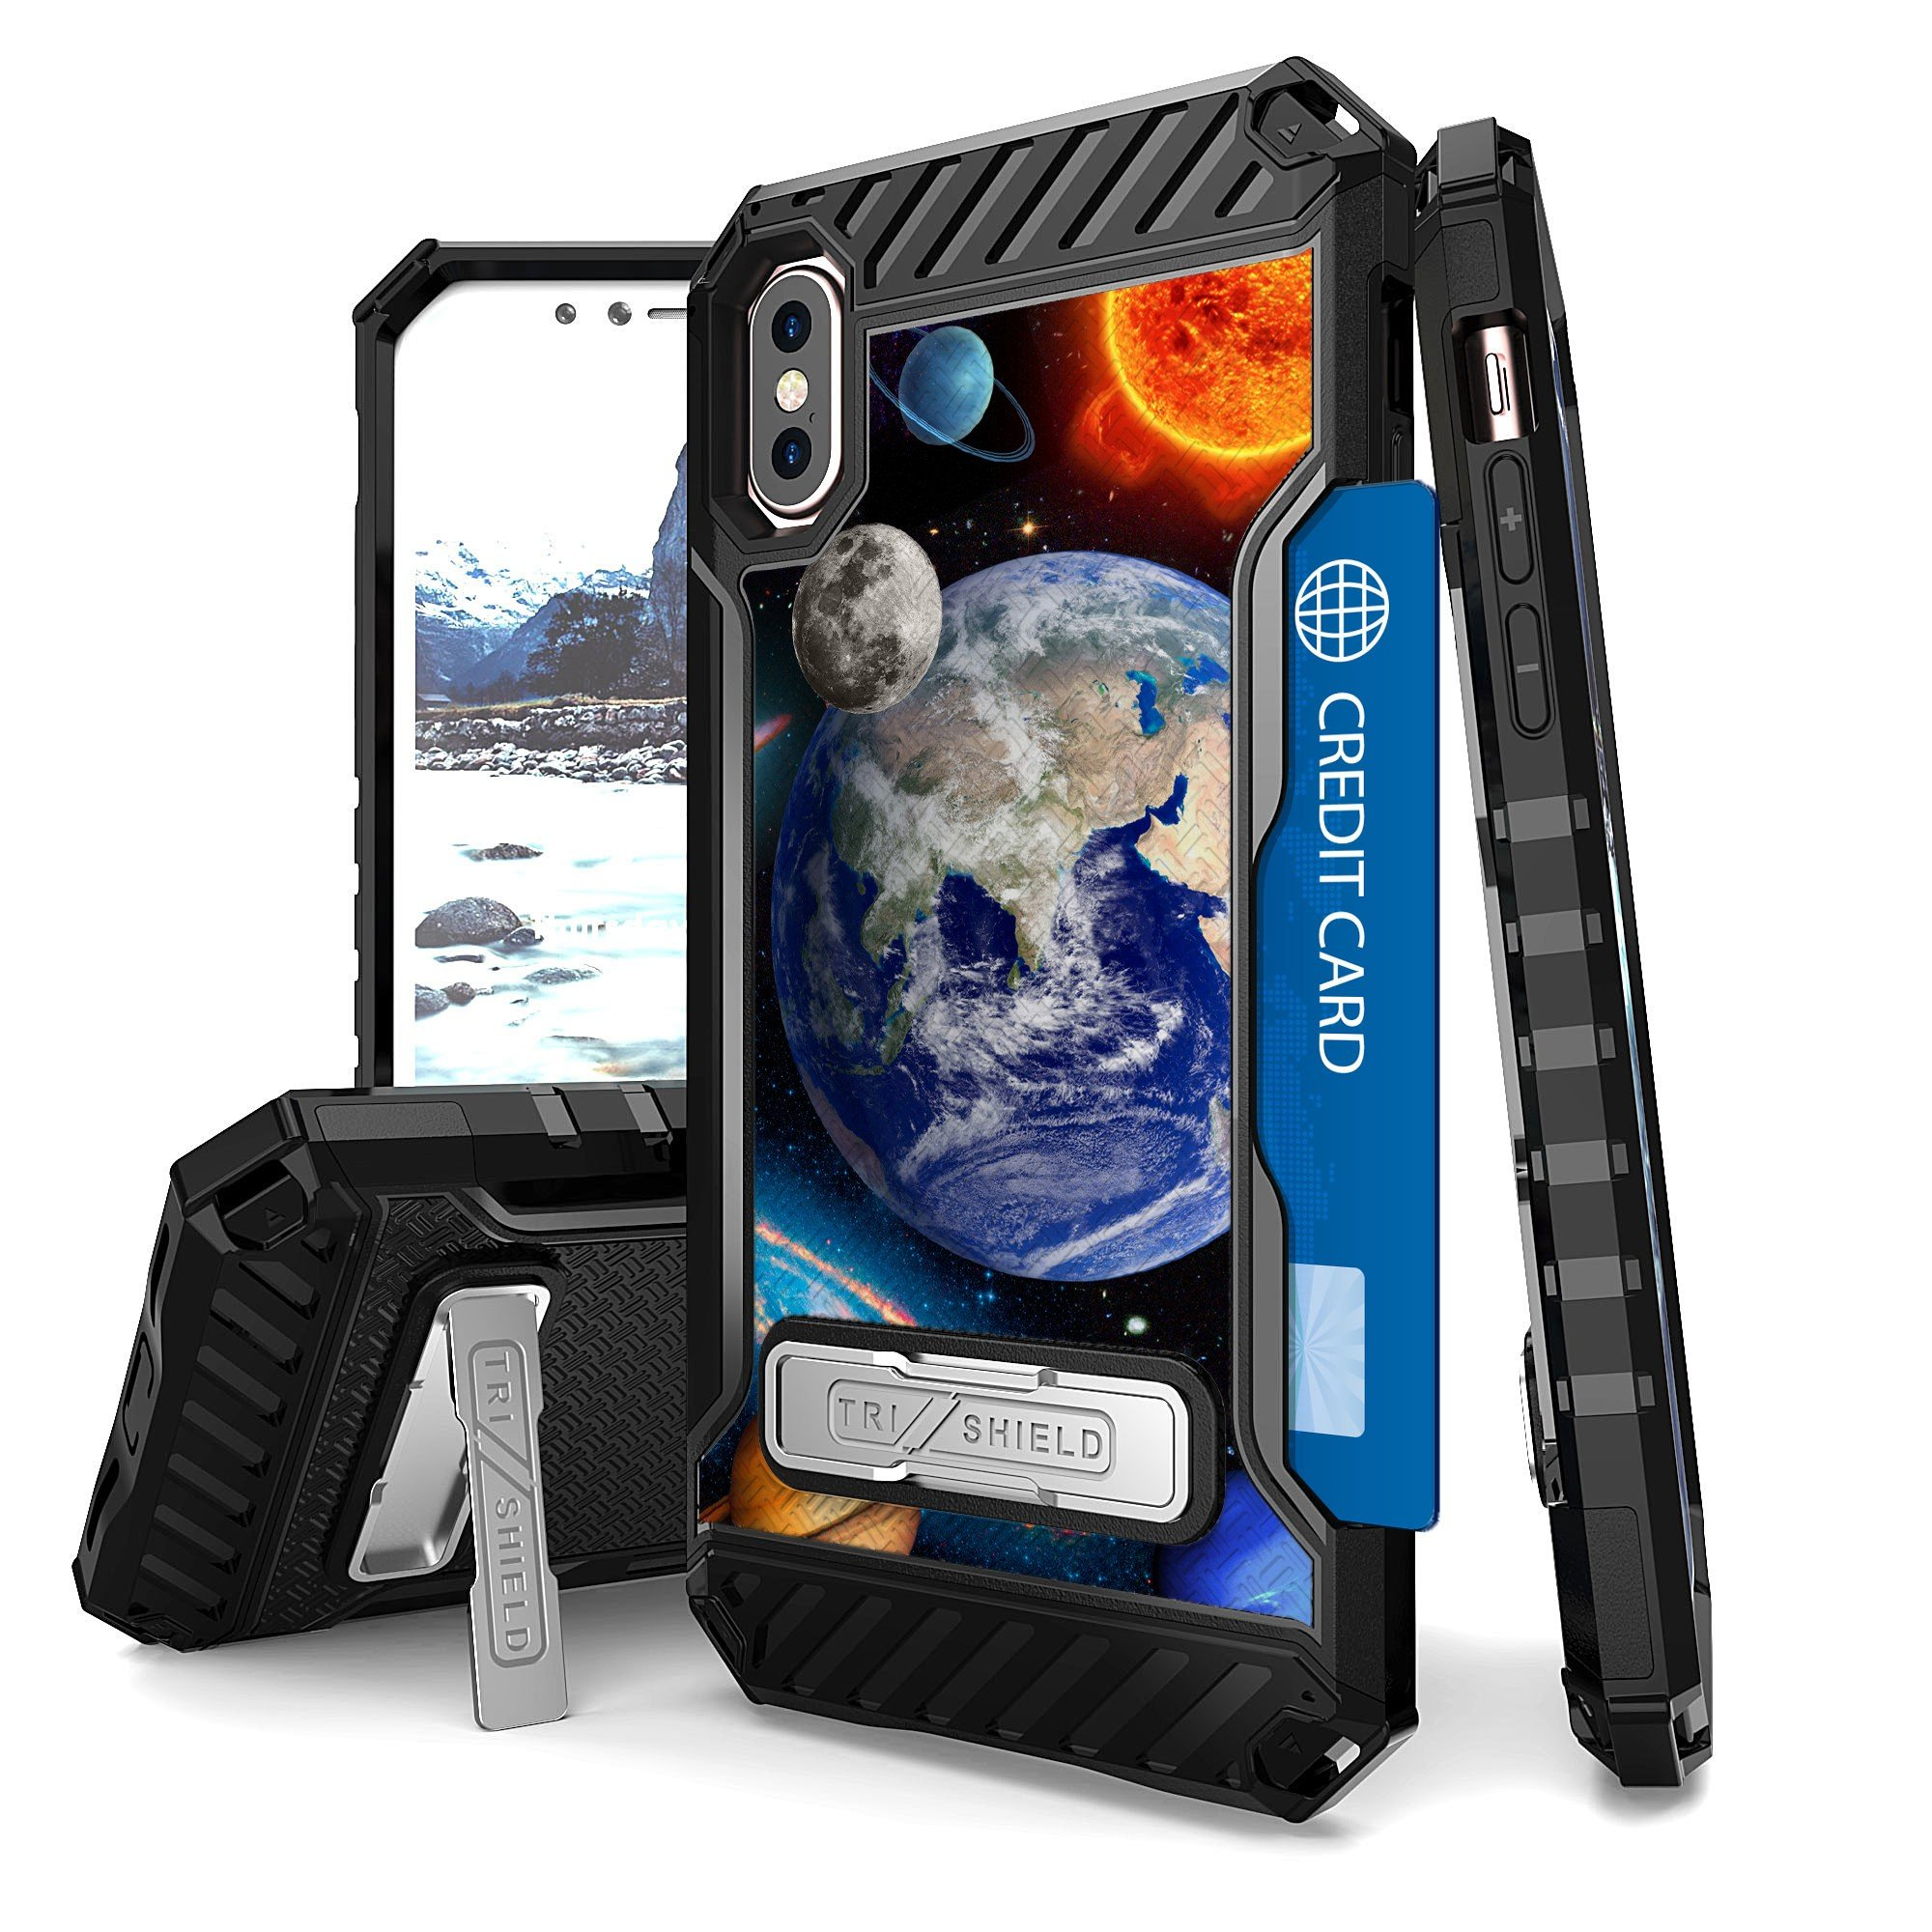 Iphone X Case, Trishield Durable Shockproof High Impact Rugged Armor Phone Cover With Detachable Lanyard Loop Card Slot Built In Kickstand For Iphone X - Solar Planet Galaxy